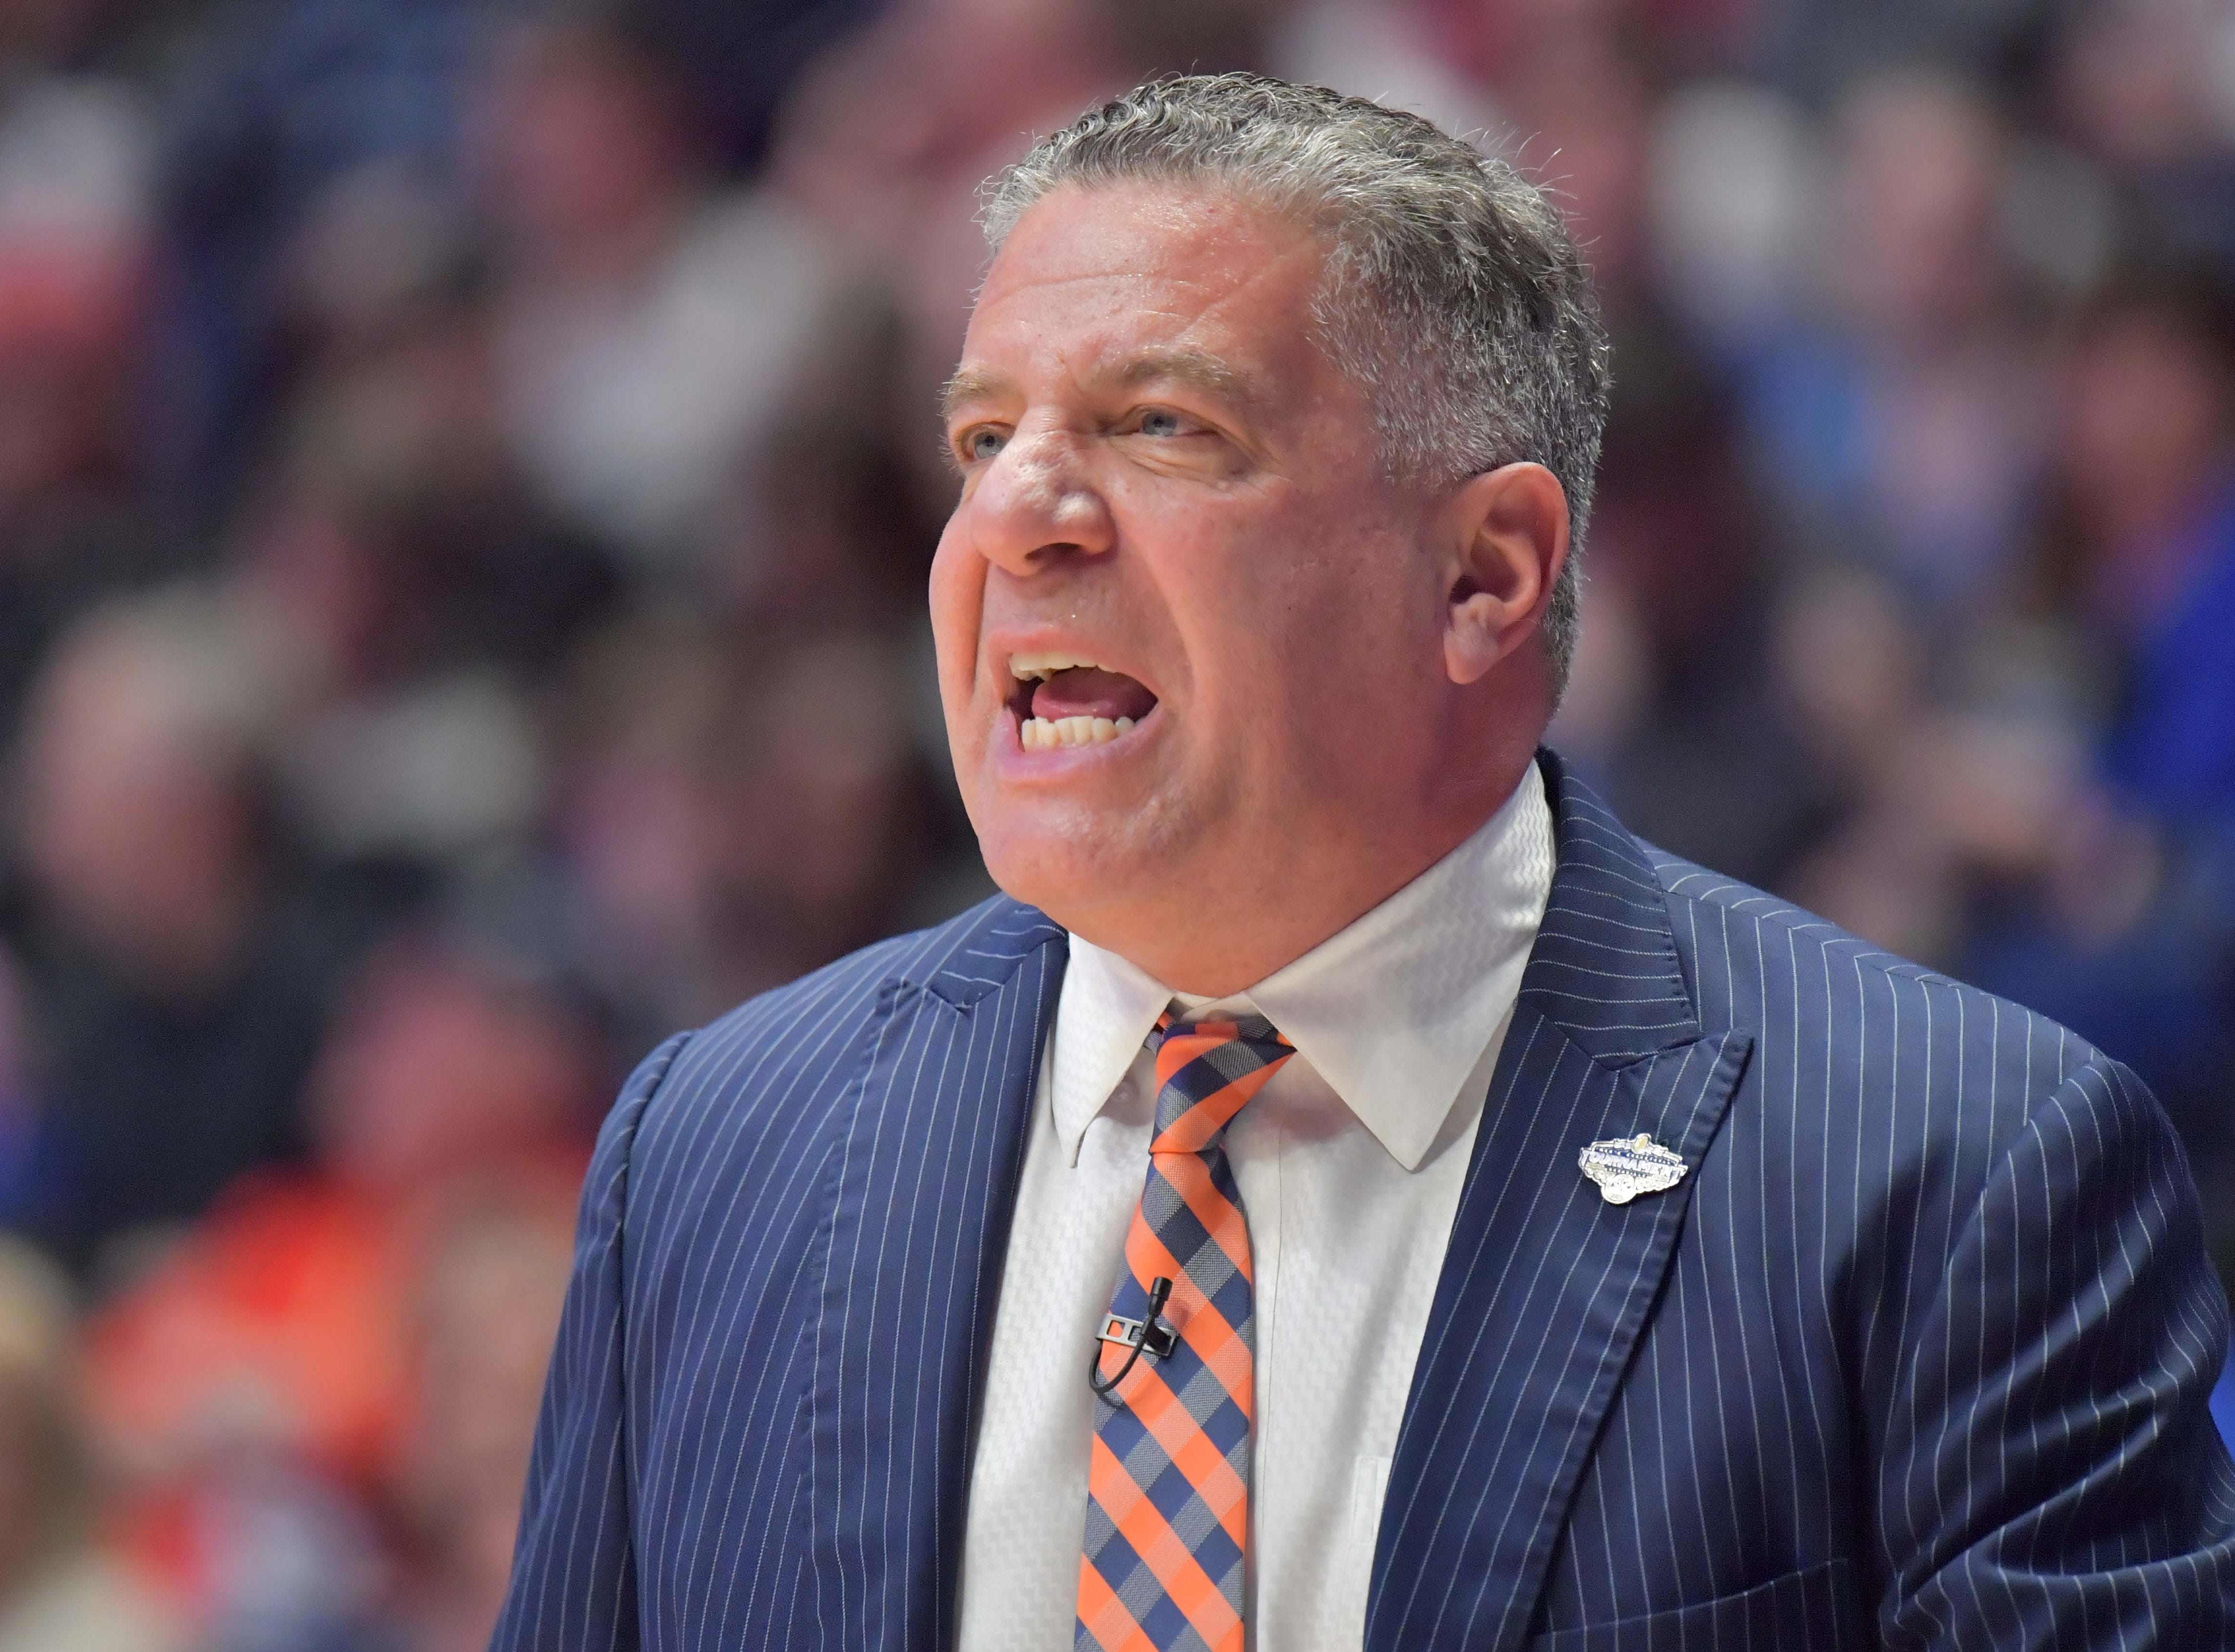 Mar 14, 2019; Nashville, TN, USA; Auburn Tigers head coach Bruce Pearl raects in the first half Auburn Tigers mascot entertains fans in the SEC conference tournament at Bridgestone Arena. Mandatory Credit: Jim Brown-USA TODAY Sports